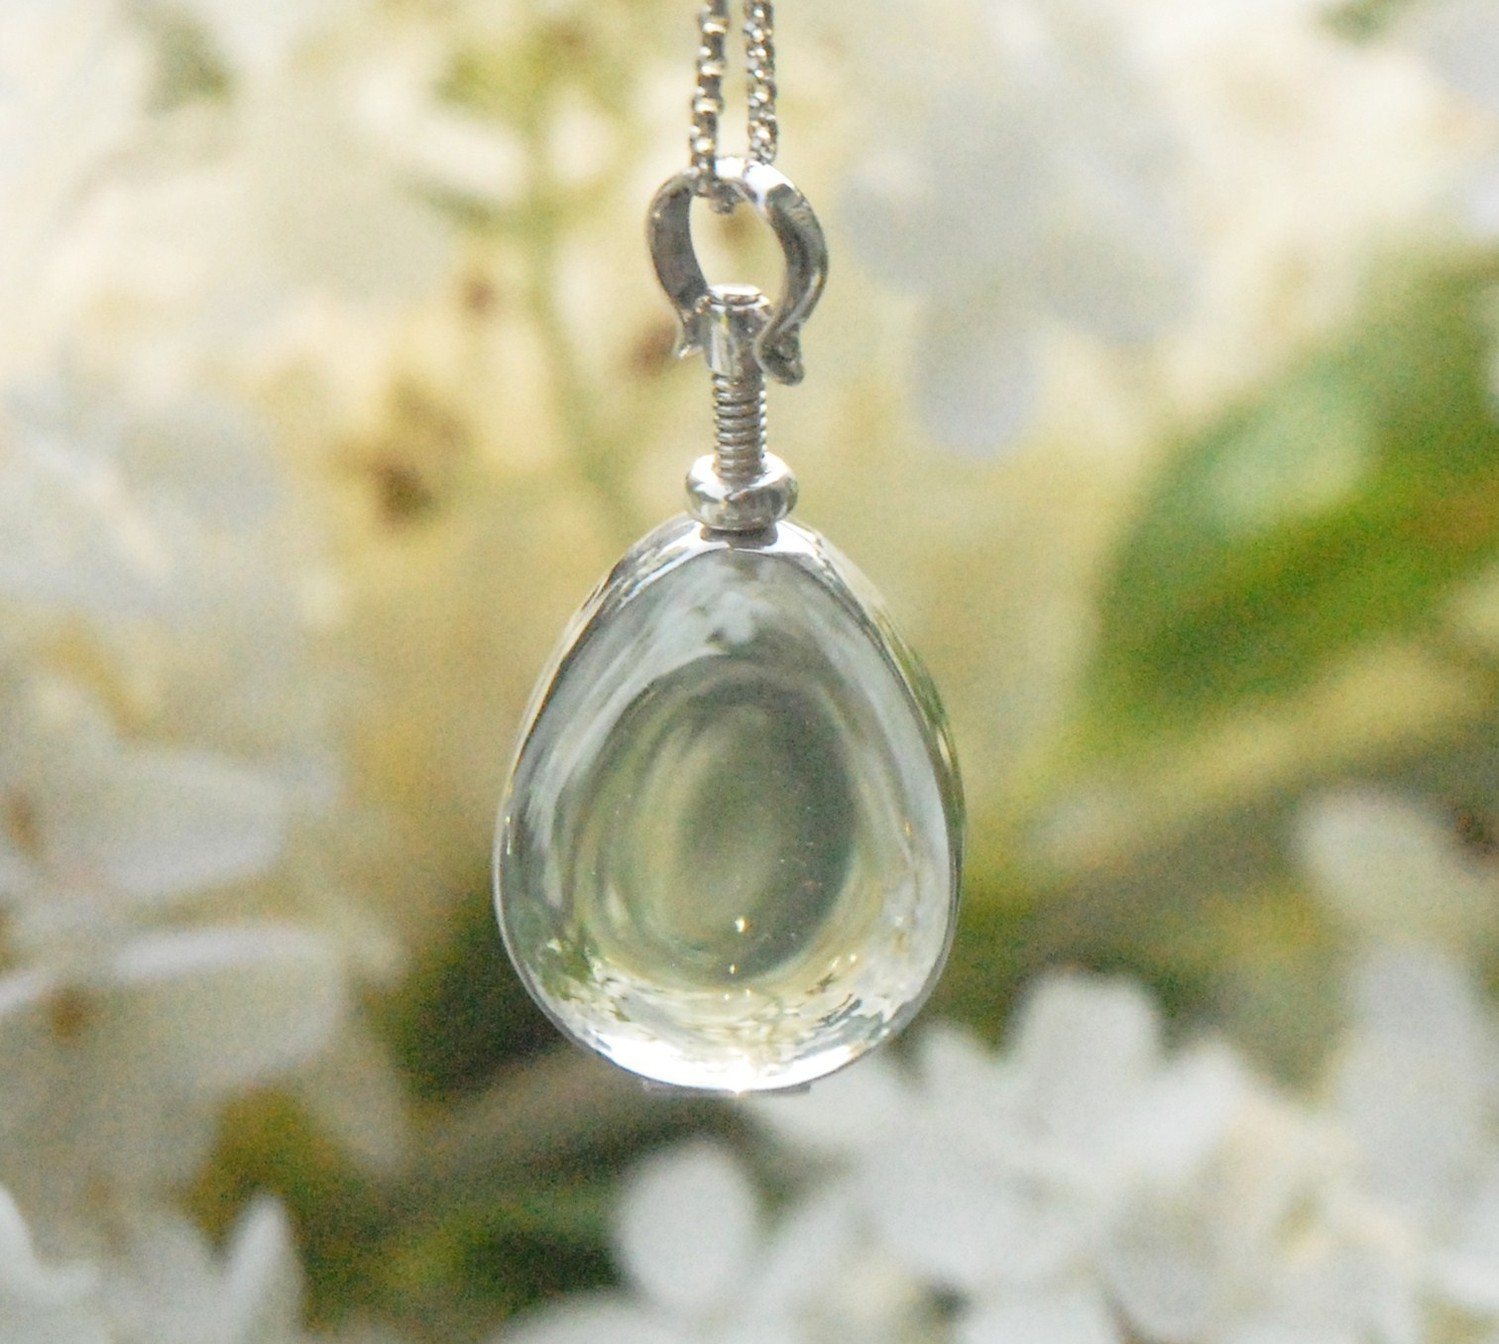 glass house jewelry remembering loved ones with a bouquet